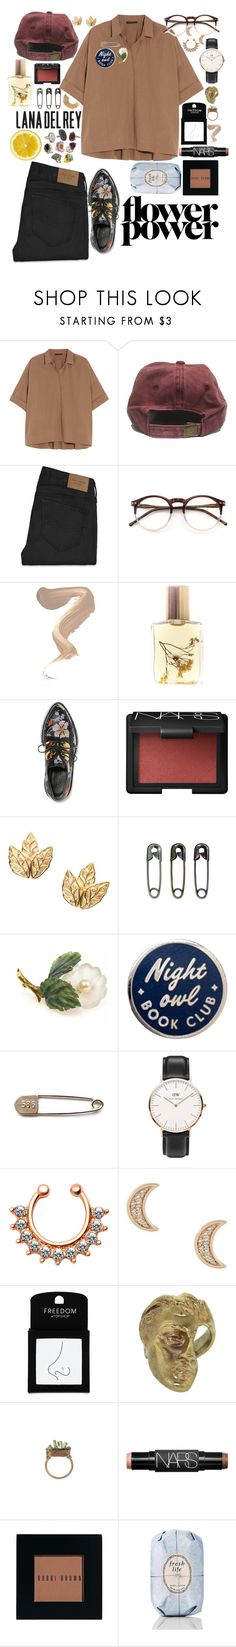 """Venus Society meeting"" by karris-thomson ❤ liked on Polyvore featuring Donna Karan, Abercrombie & Fitch, Wildfox, LASplash, Flidais Parfumerie, Alexander McQueen, NARS Cosmetics, Tim Holtz, Daniel Wellington and Astley Clarke"